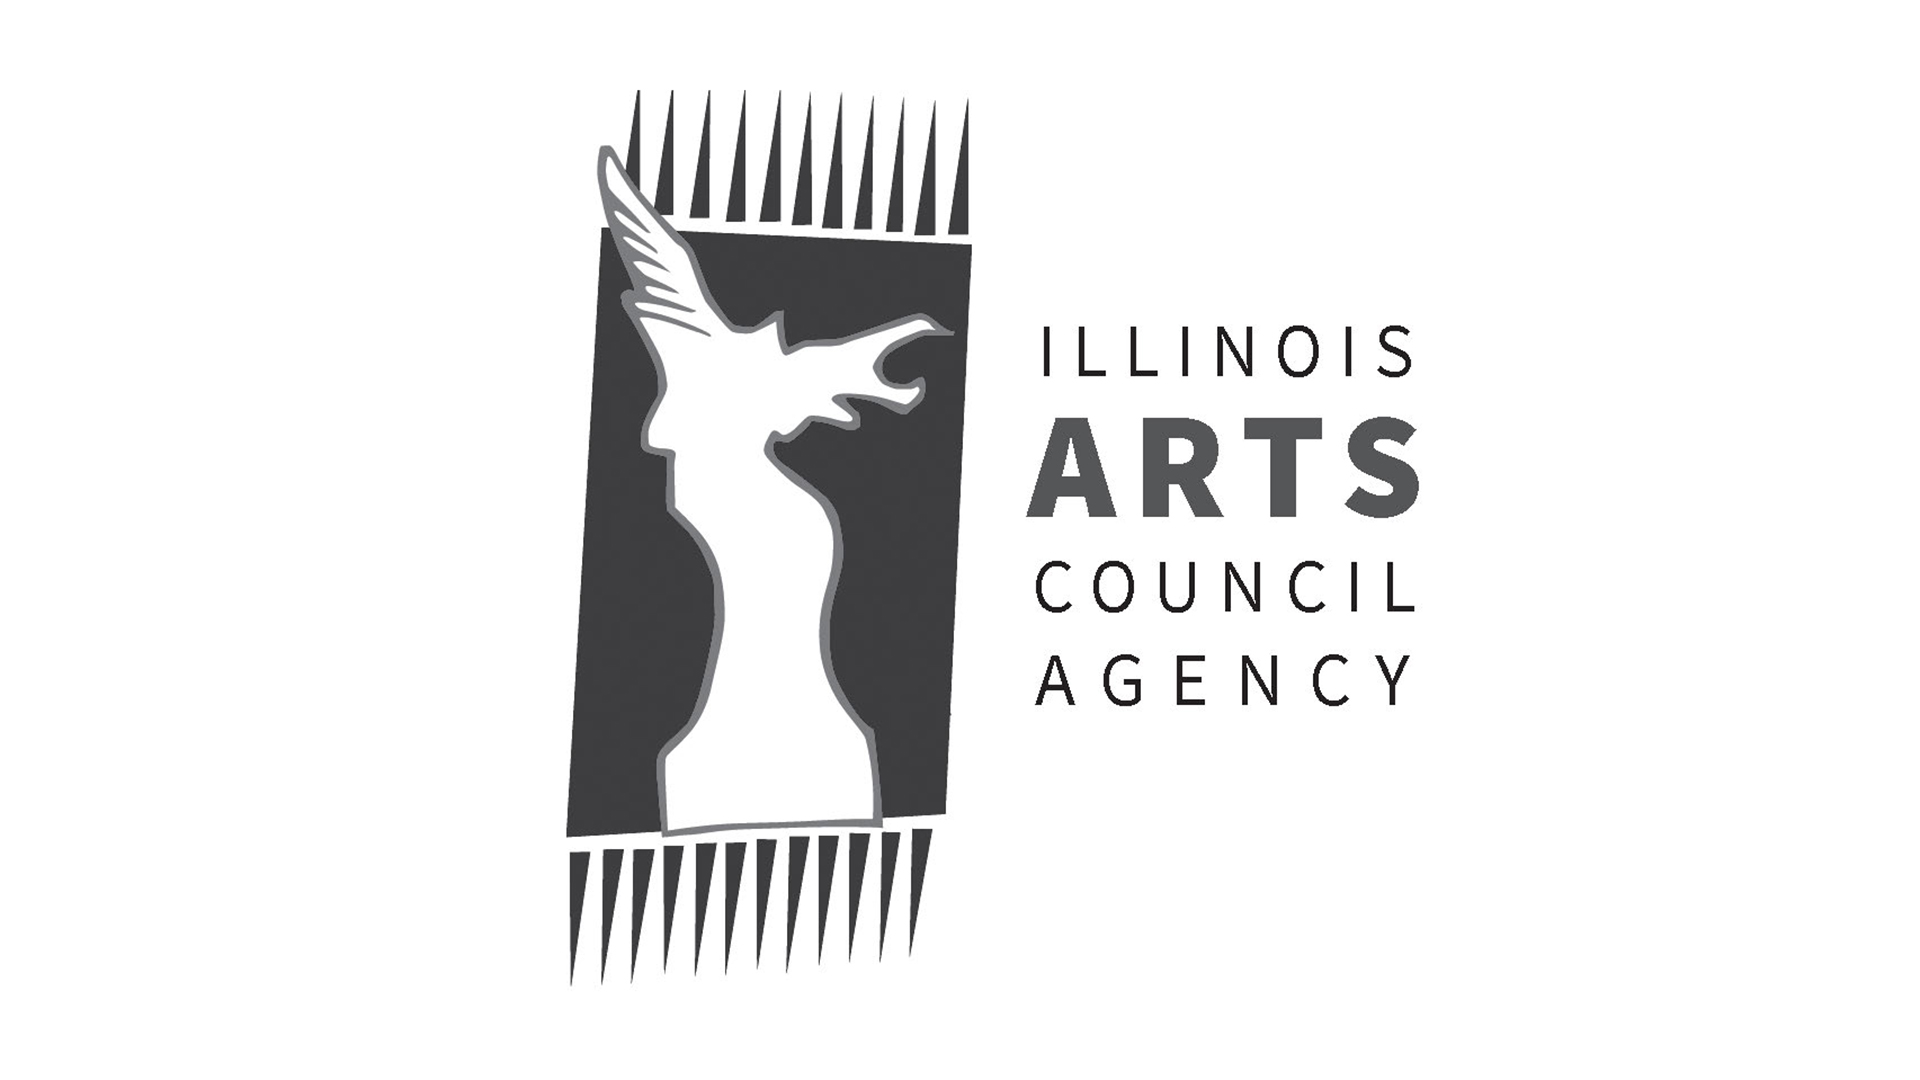 /img/Black and white Illinois arts council agency logo